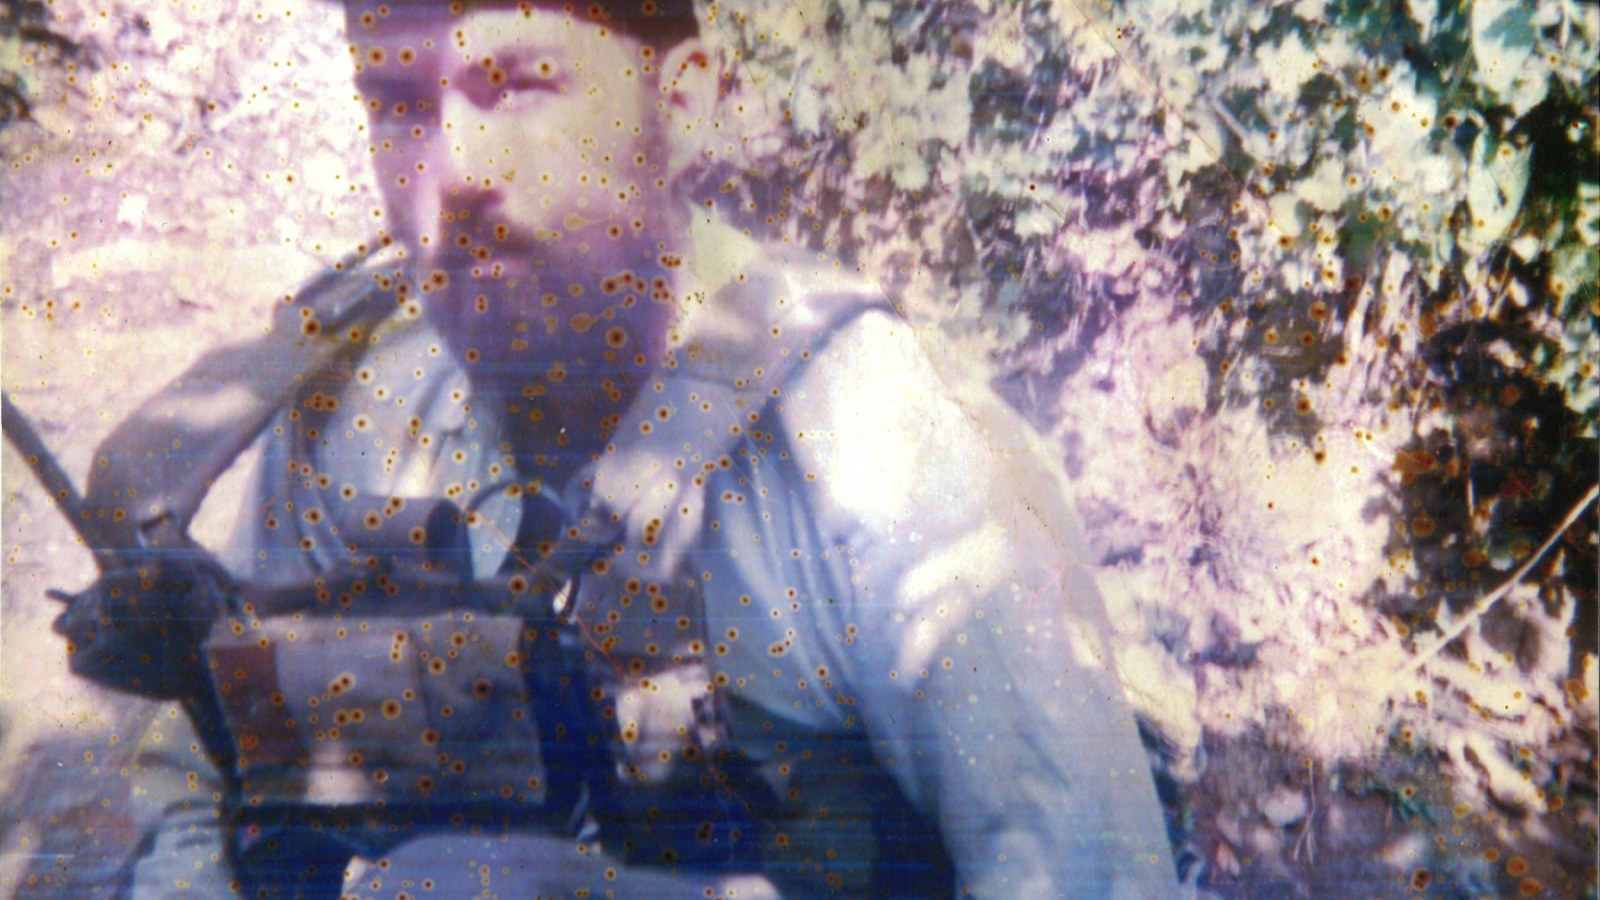 Marcus Luttrell's Savior, Mohammad Gulab, Claims 'Lone